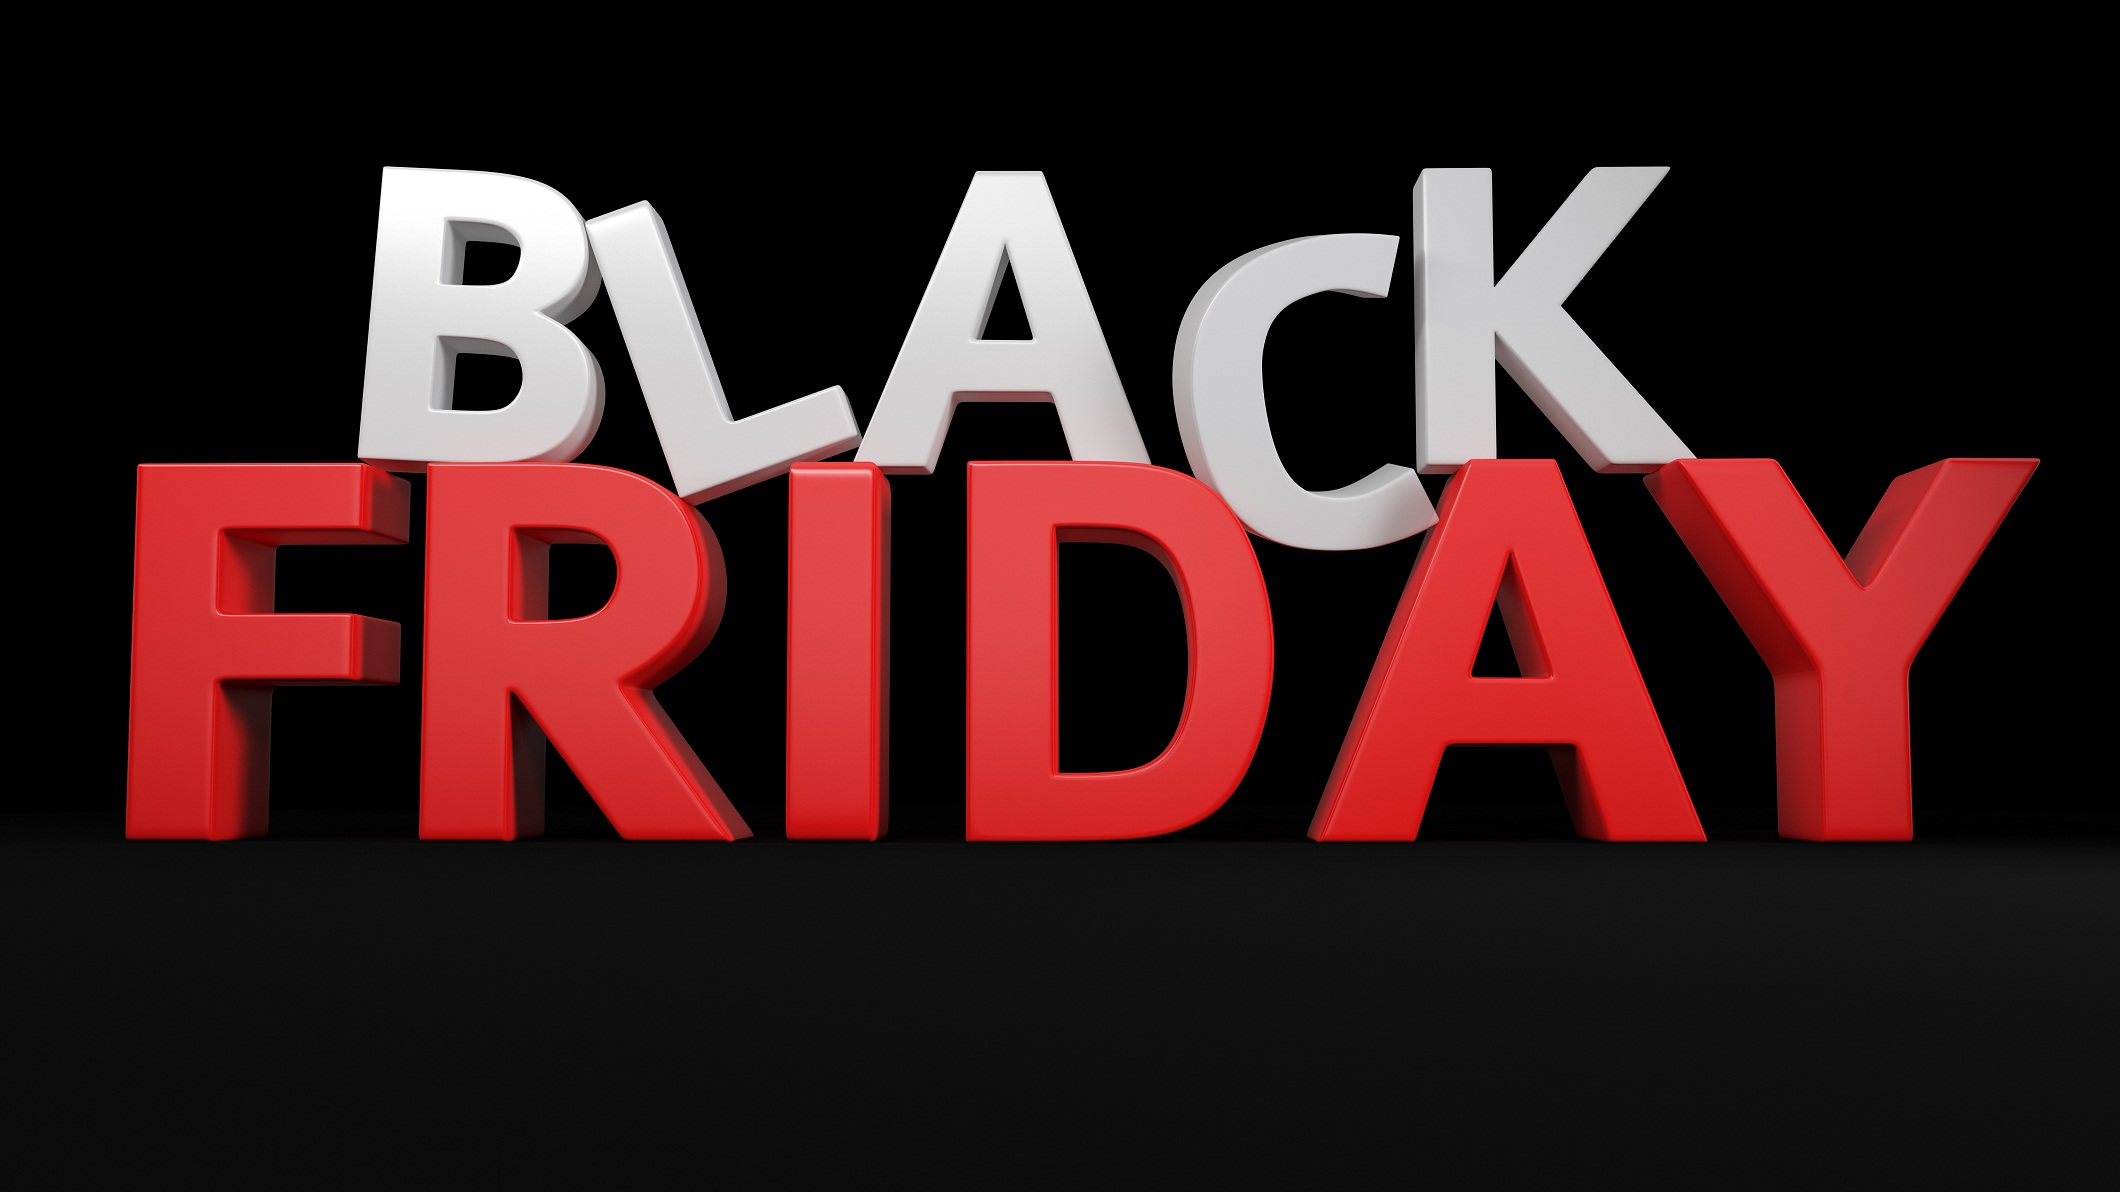 Black Friday logo templates. Download thousands of free vectors on Freepik, the finder with more than a million free graphic resources.